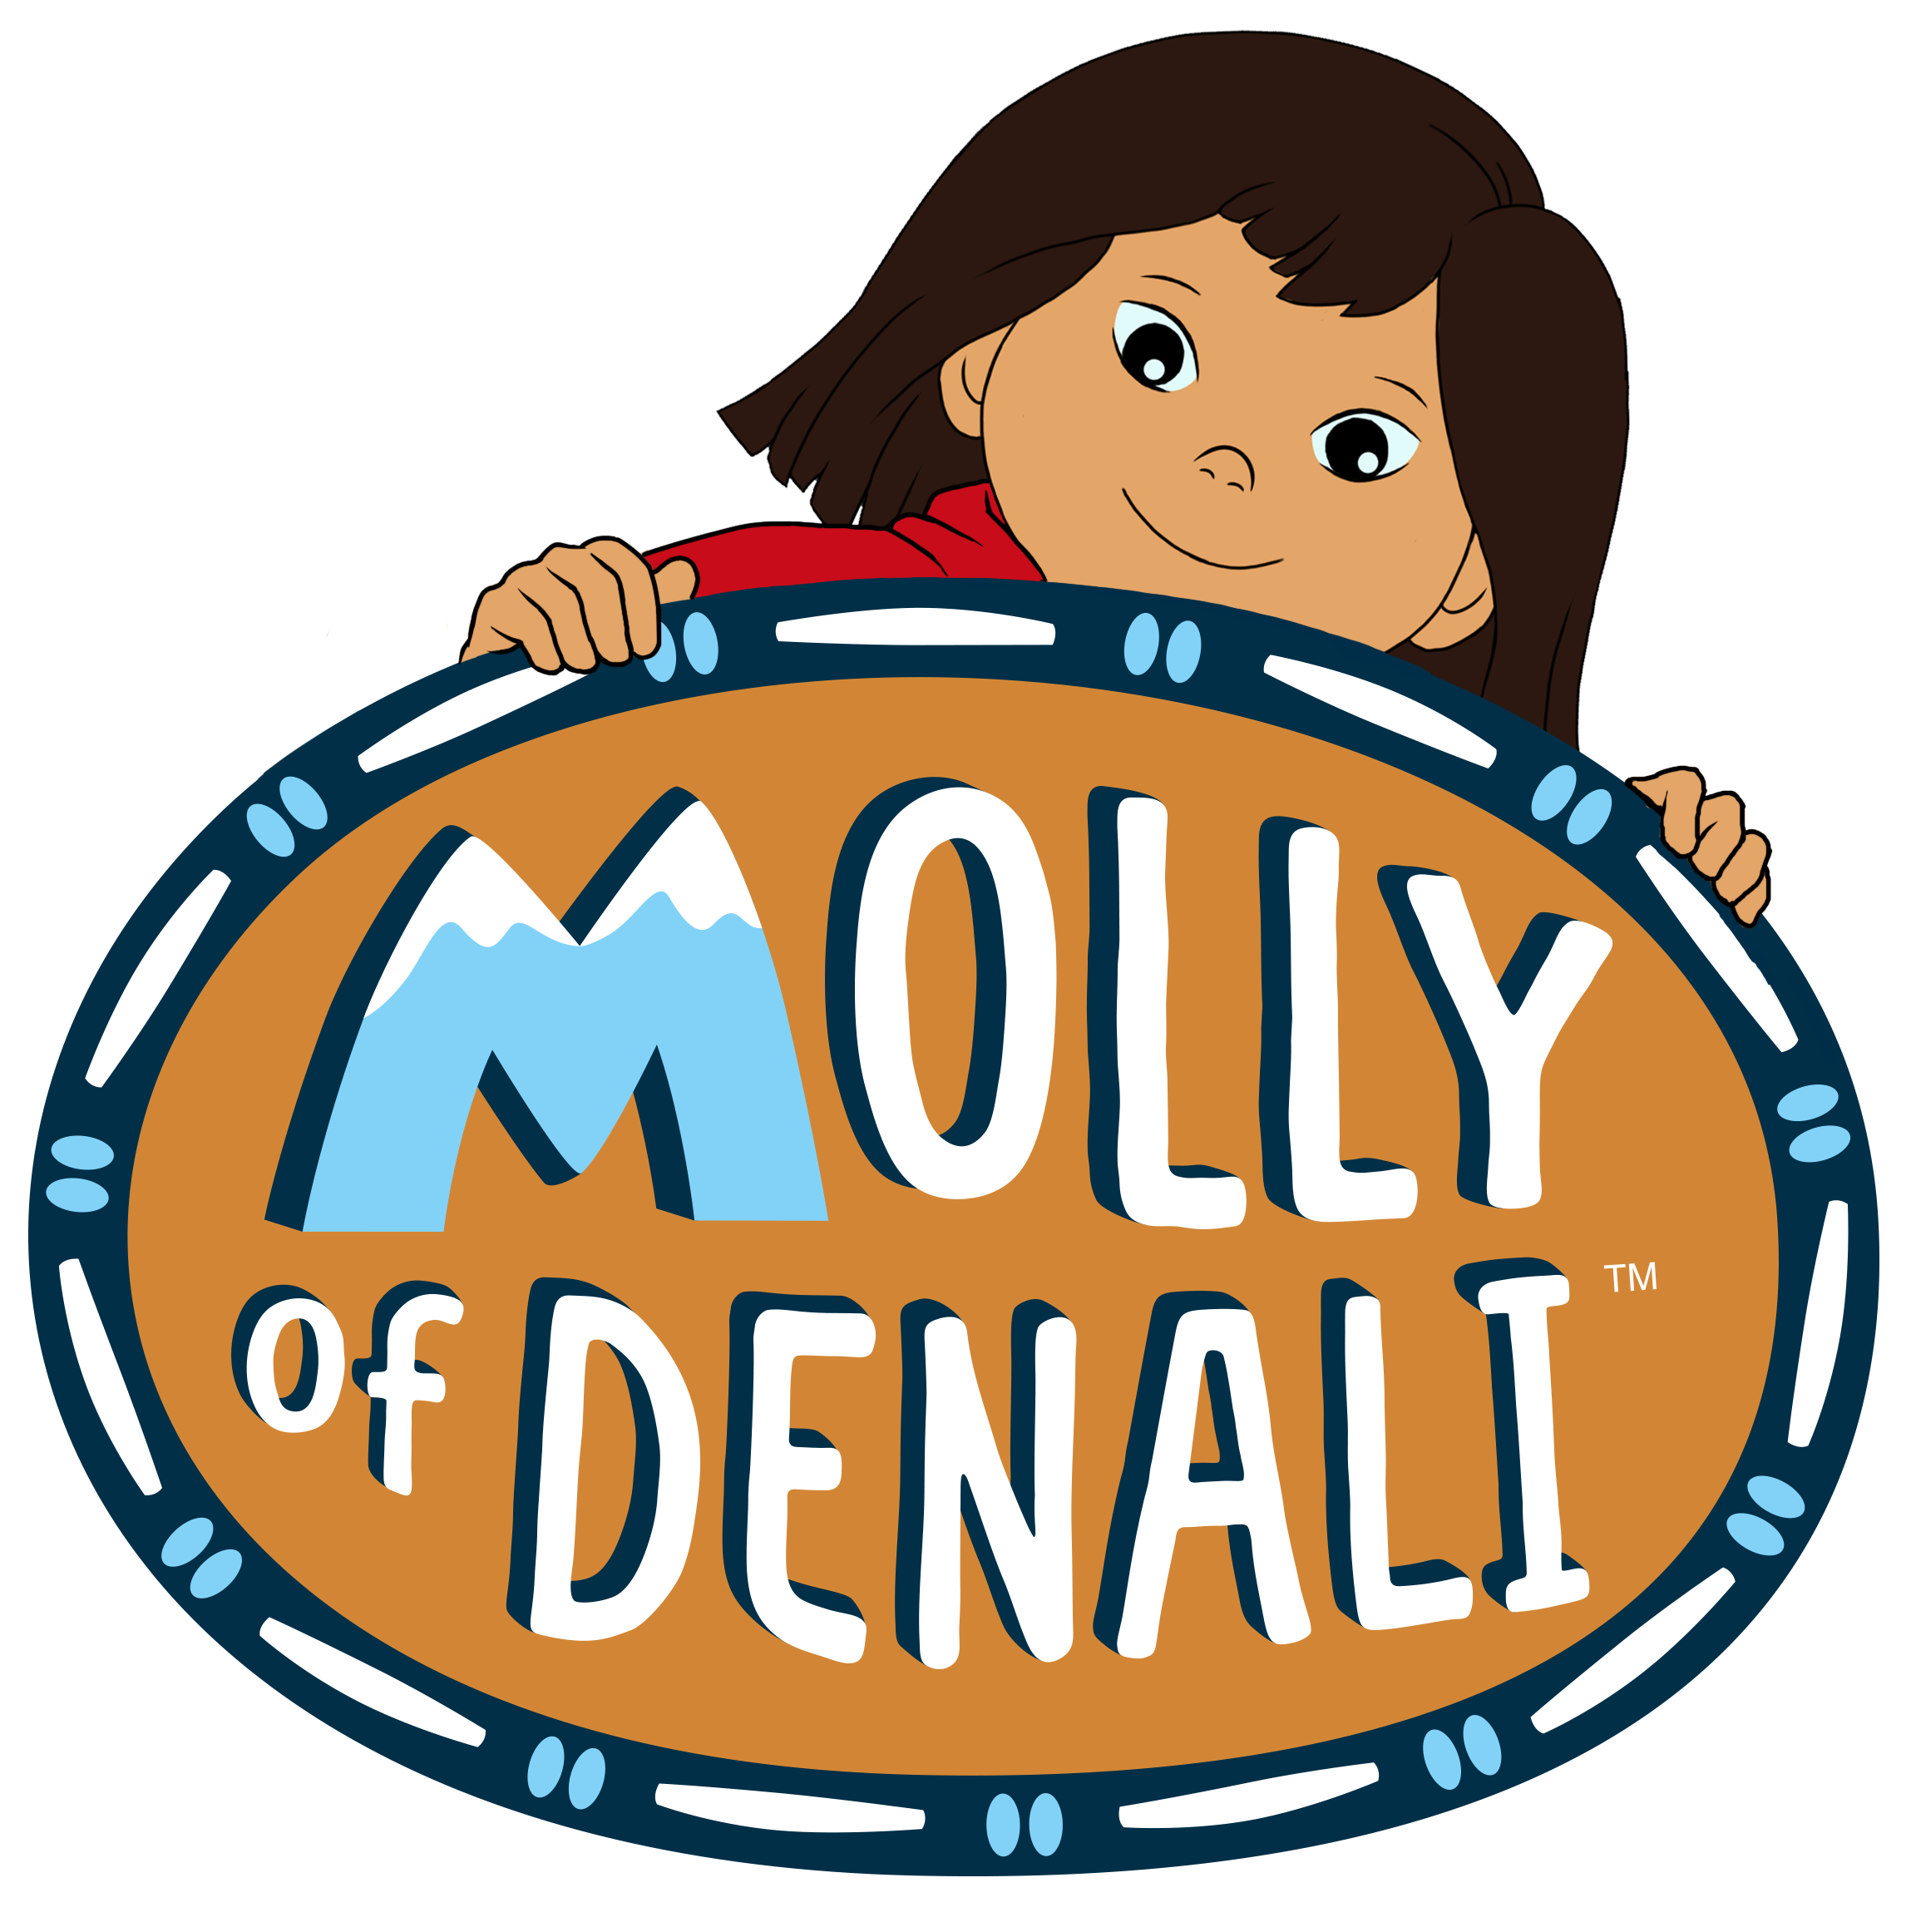 Molly of Denali album art